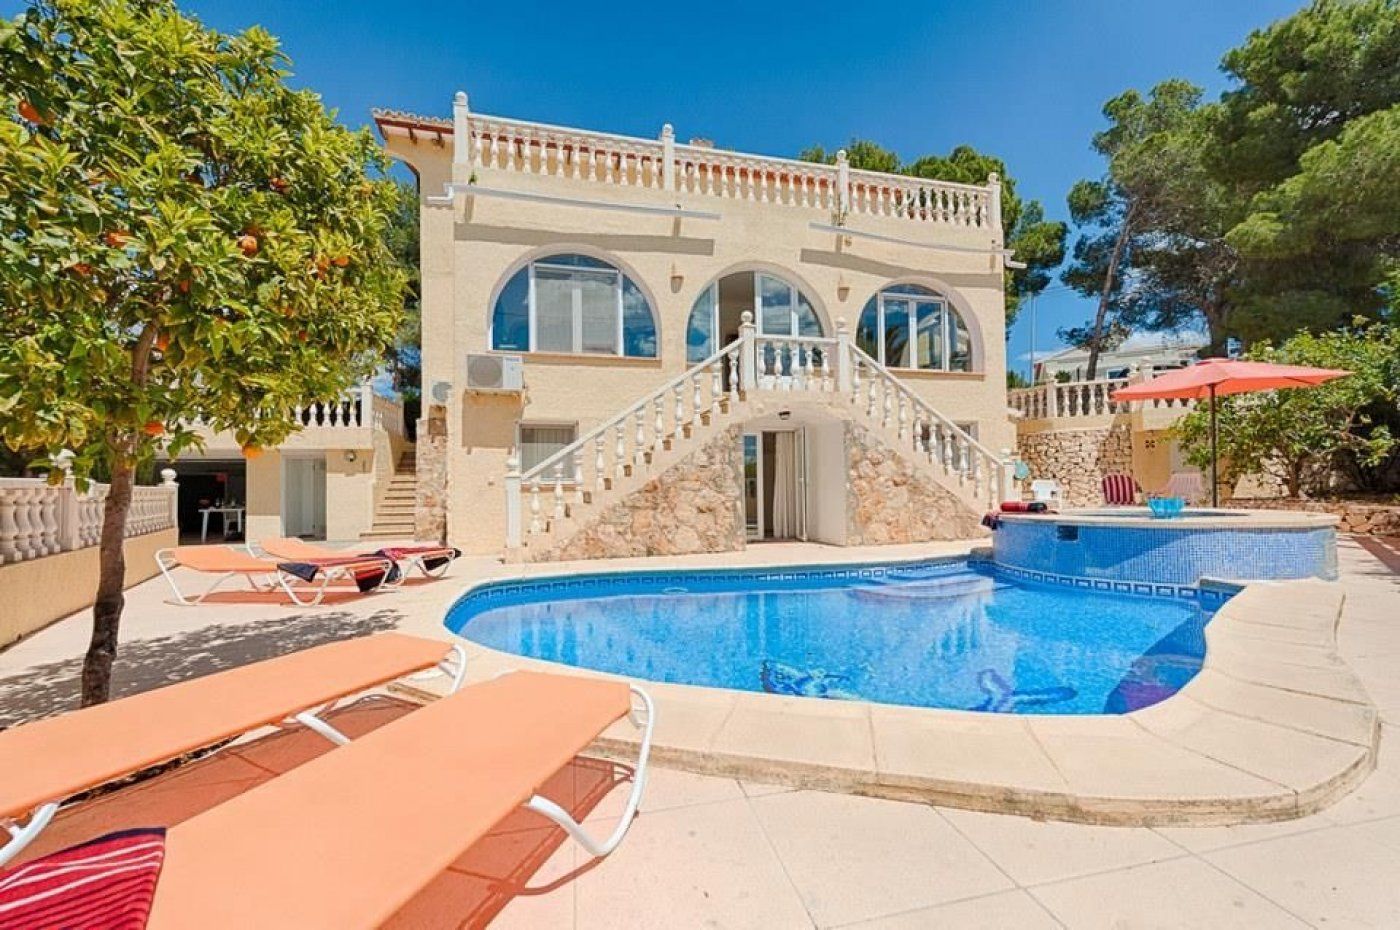 6 Bedroom Villa in Benissa Costa